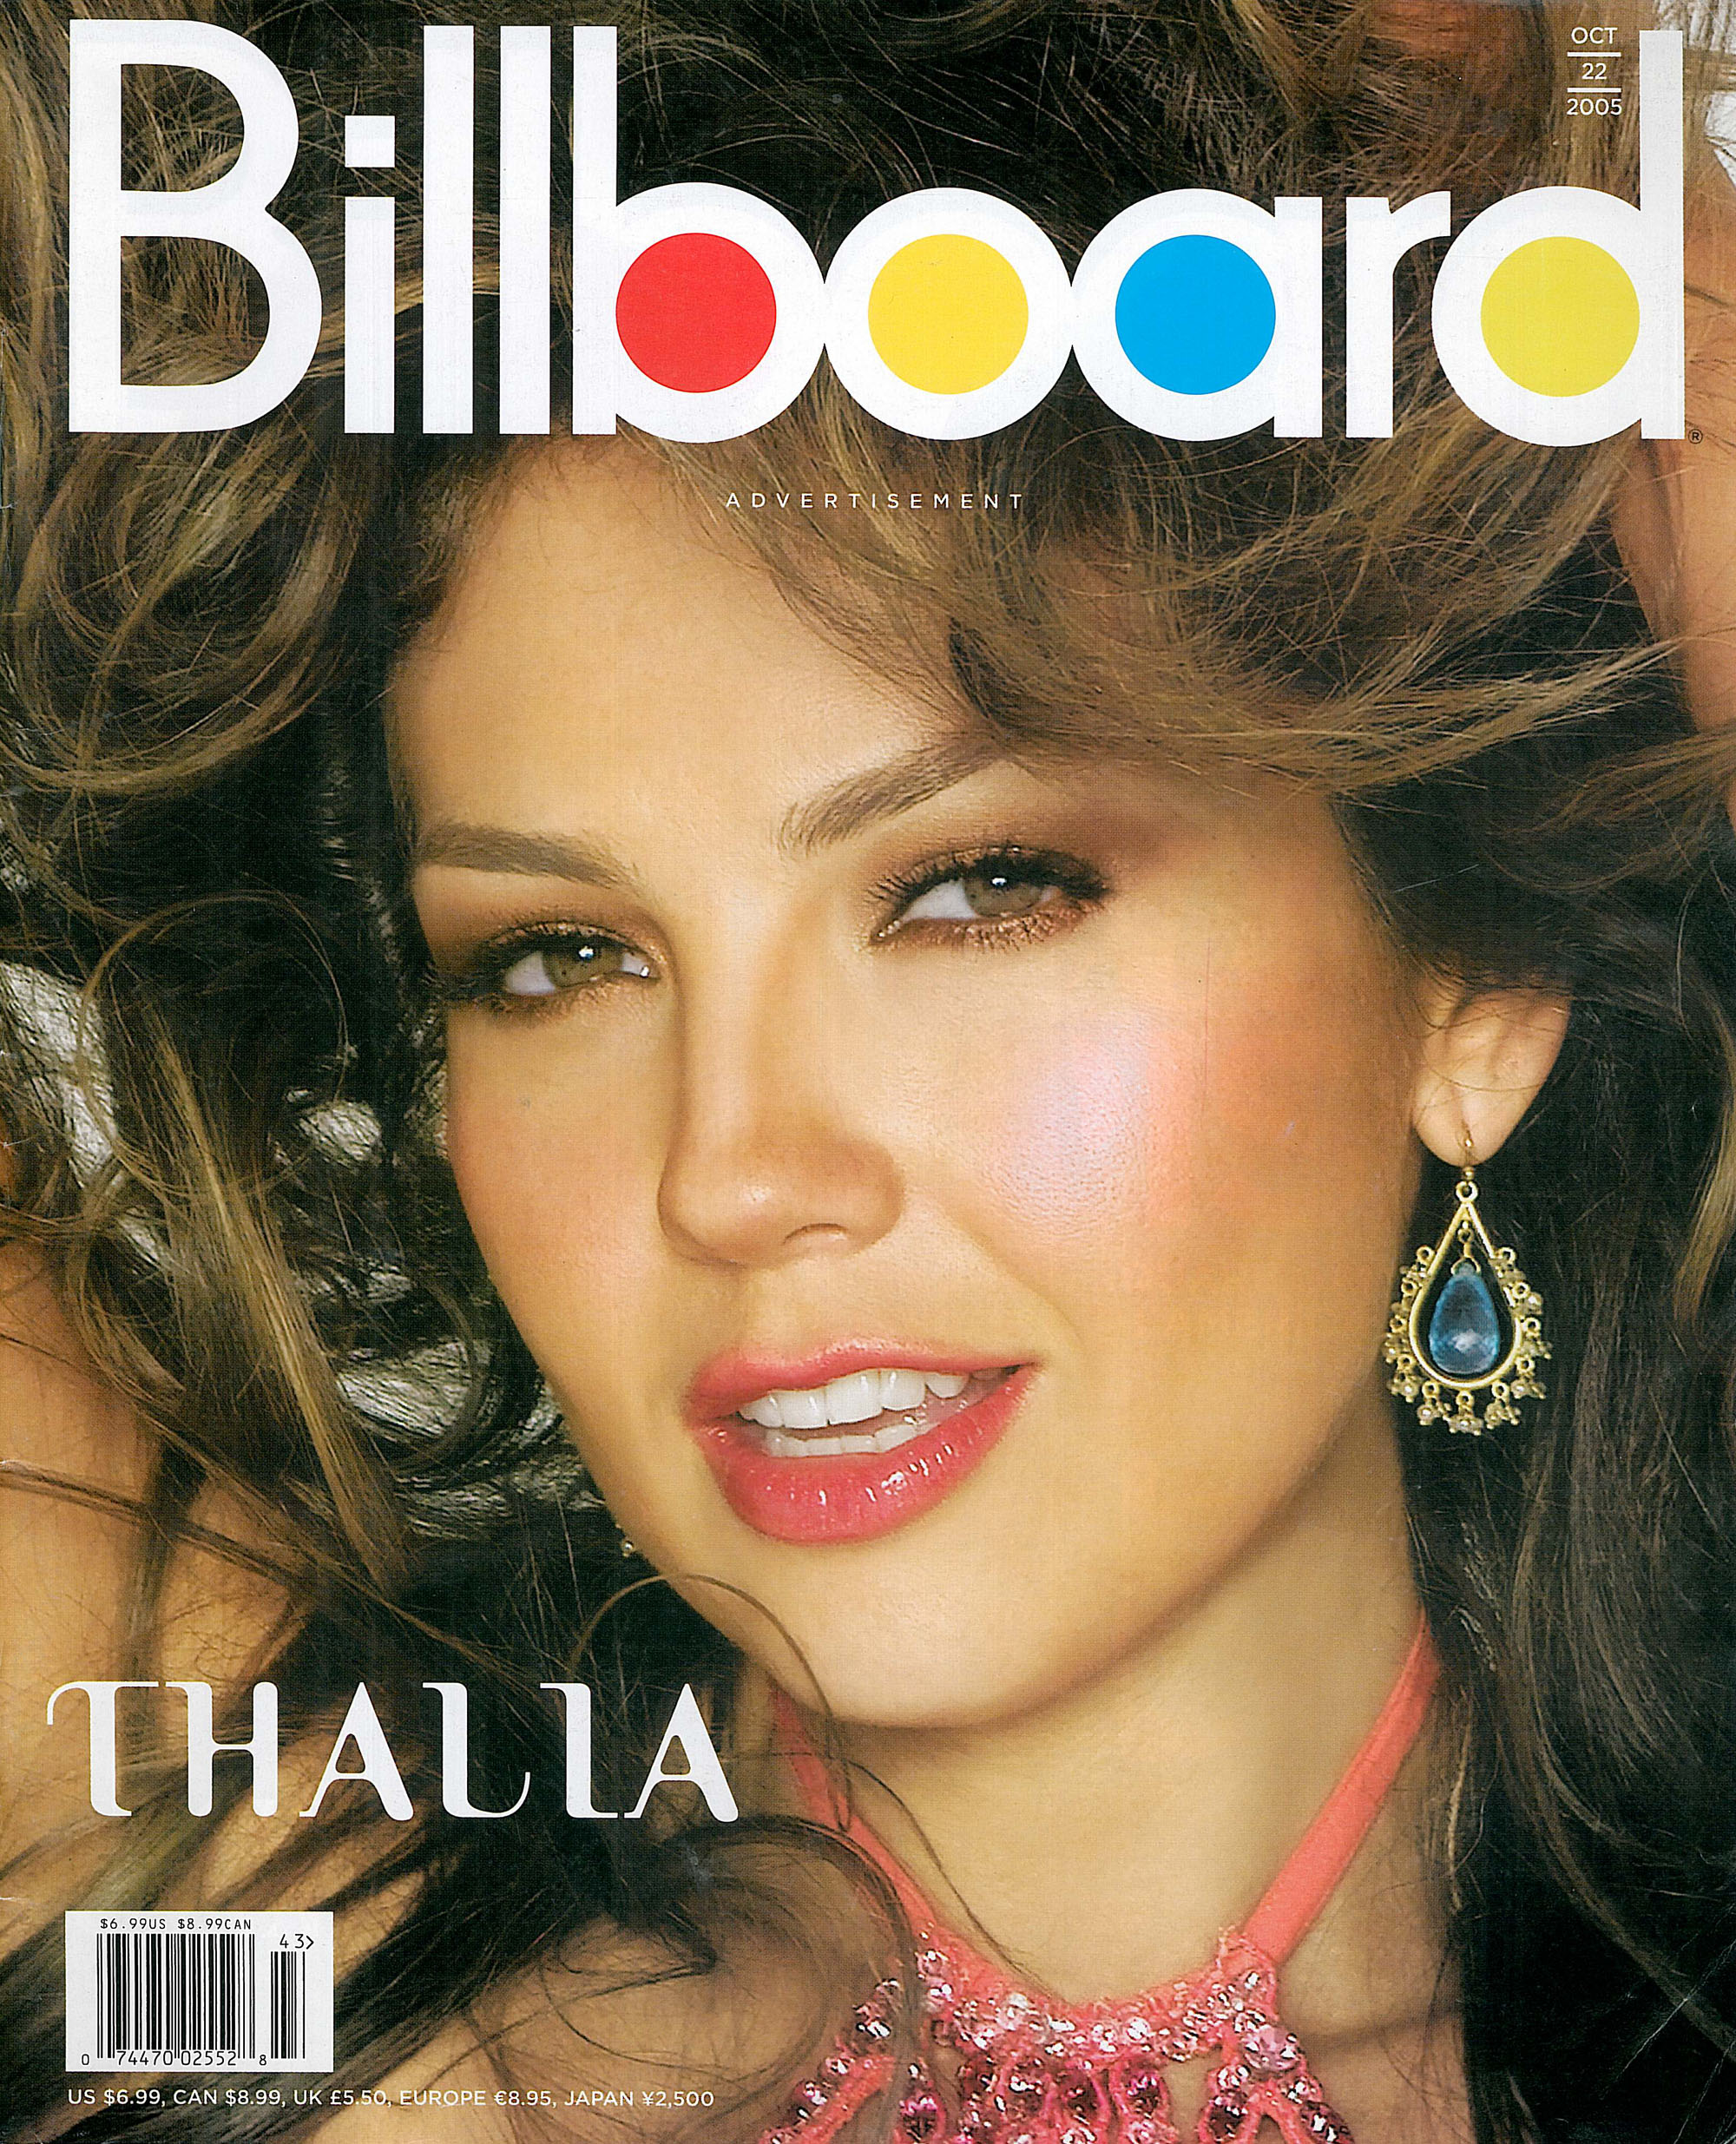 thalia-billboard